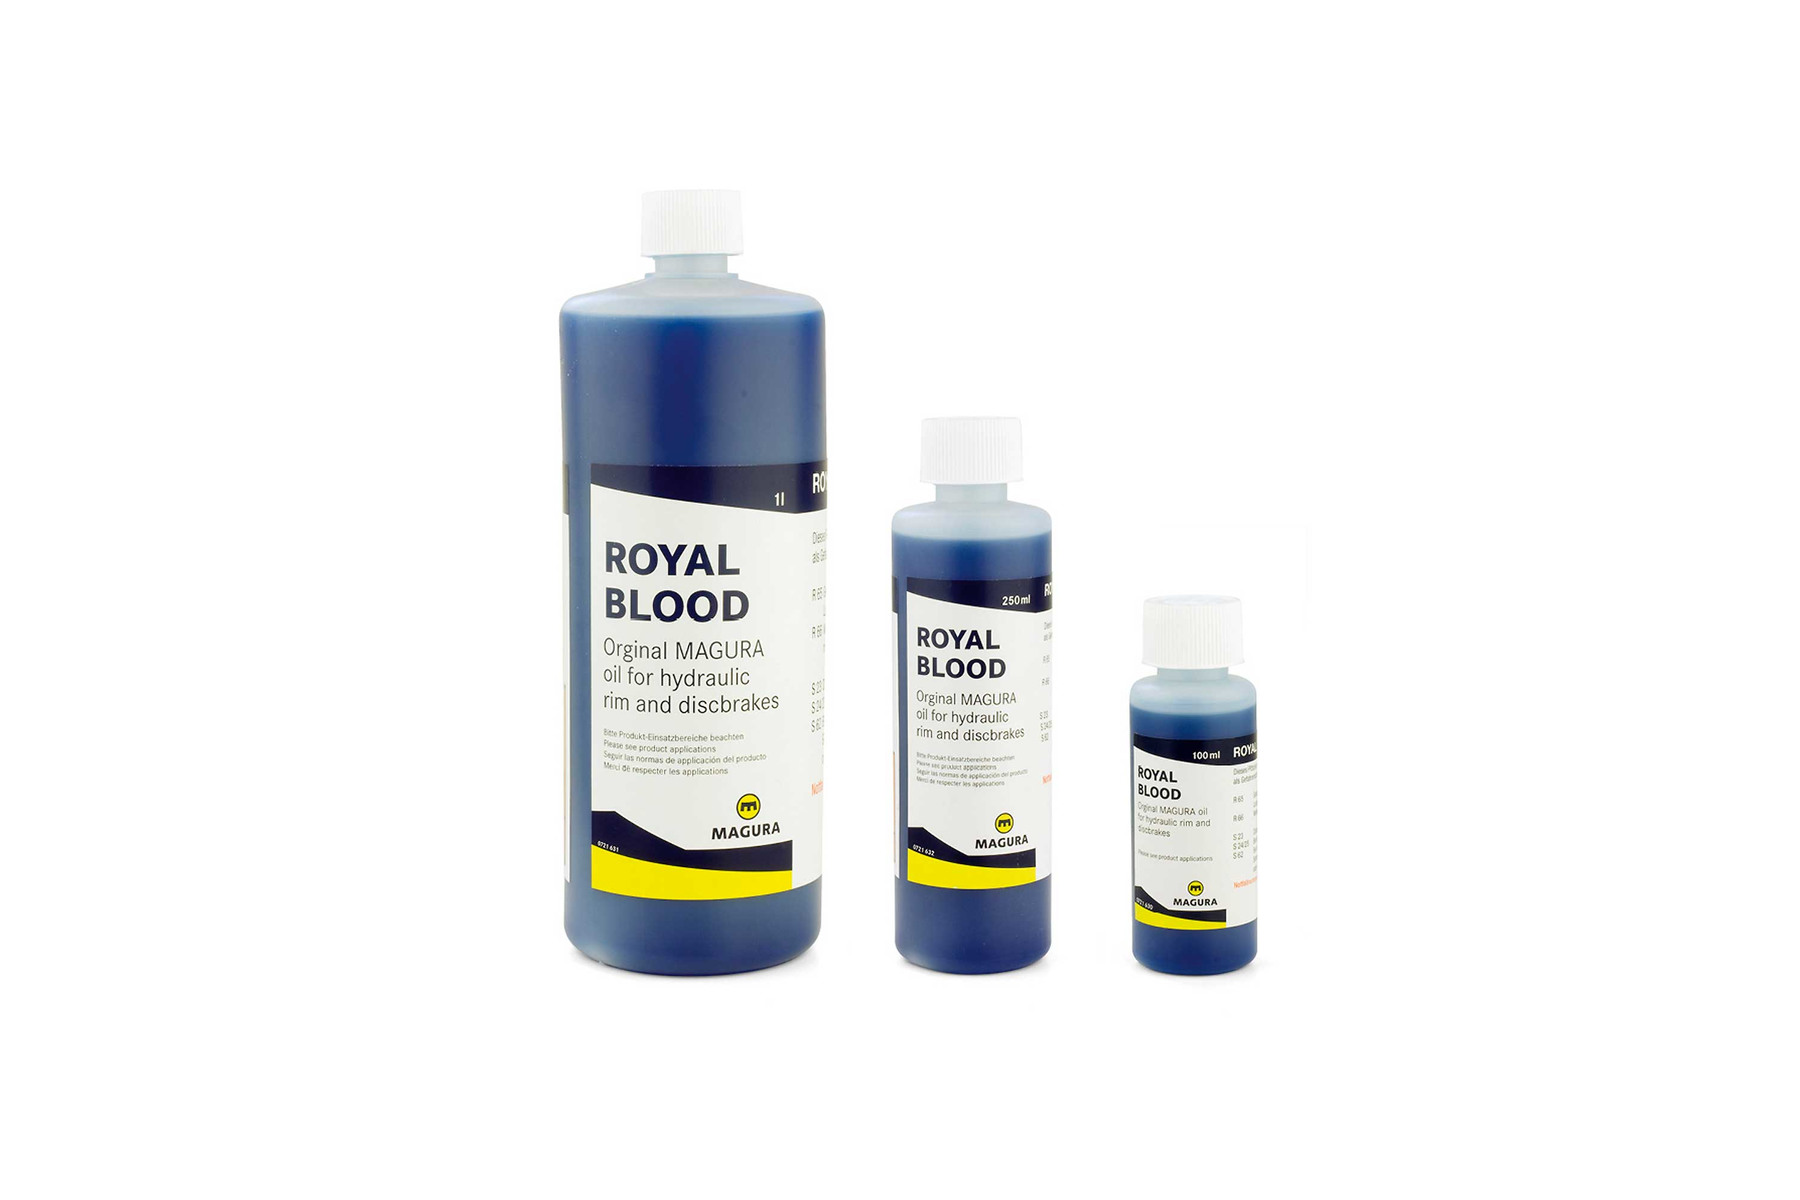 Fulgurant Philippines Royal Blood Mineral Oil Buy Magura Royal Blood Mineral Oil Rose Bikes Where To Buy Mineral Oil Wood Where To Buy Mineral Oil houzz-02 Where To Buy Mineral Oil